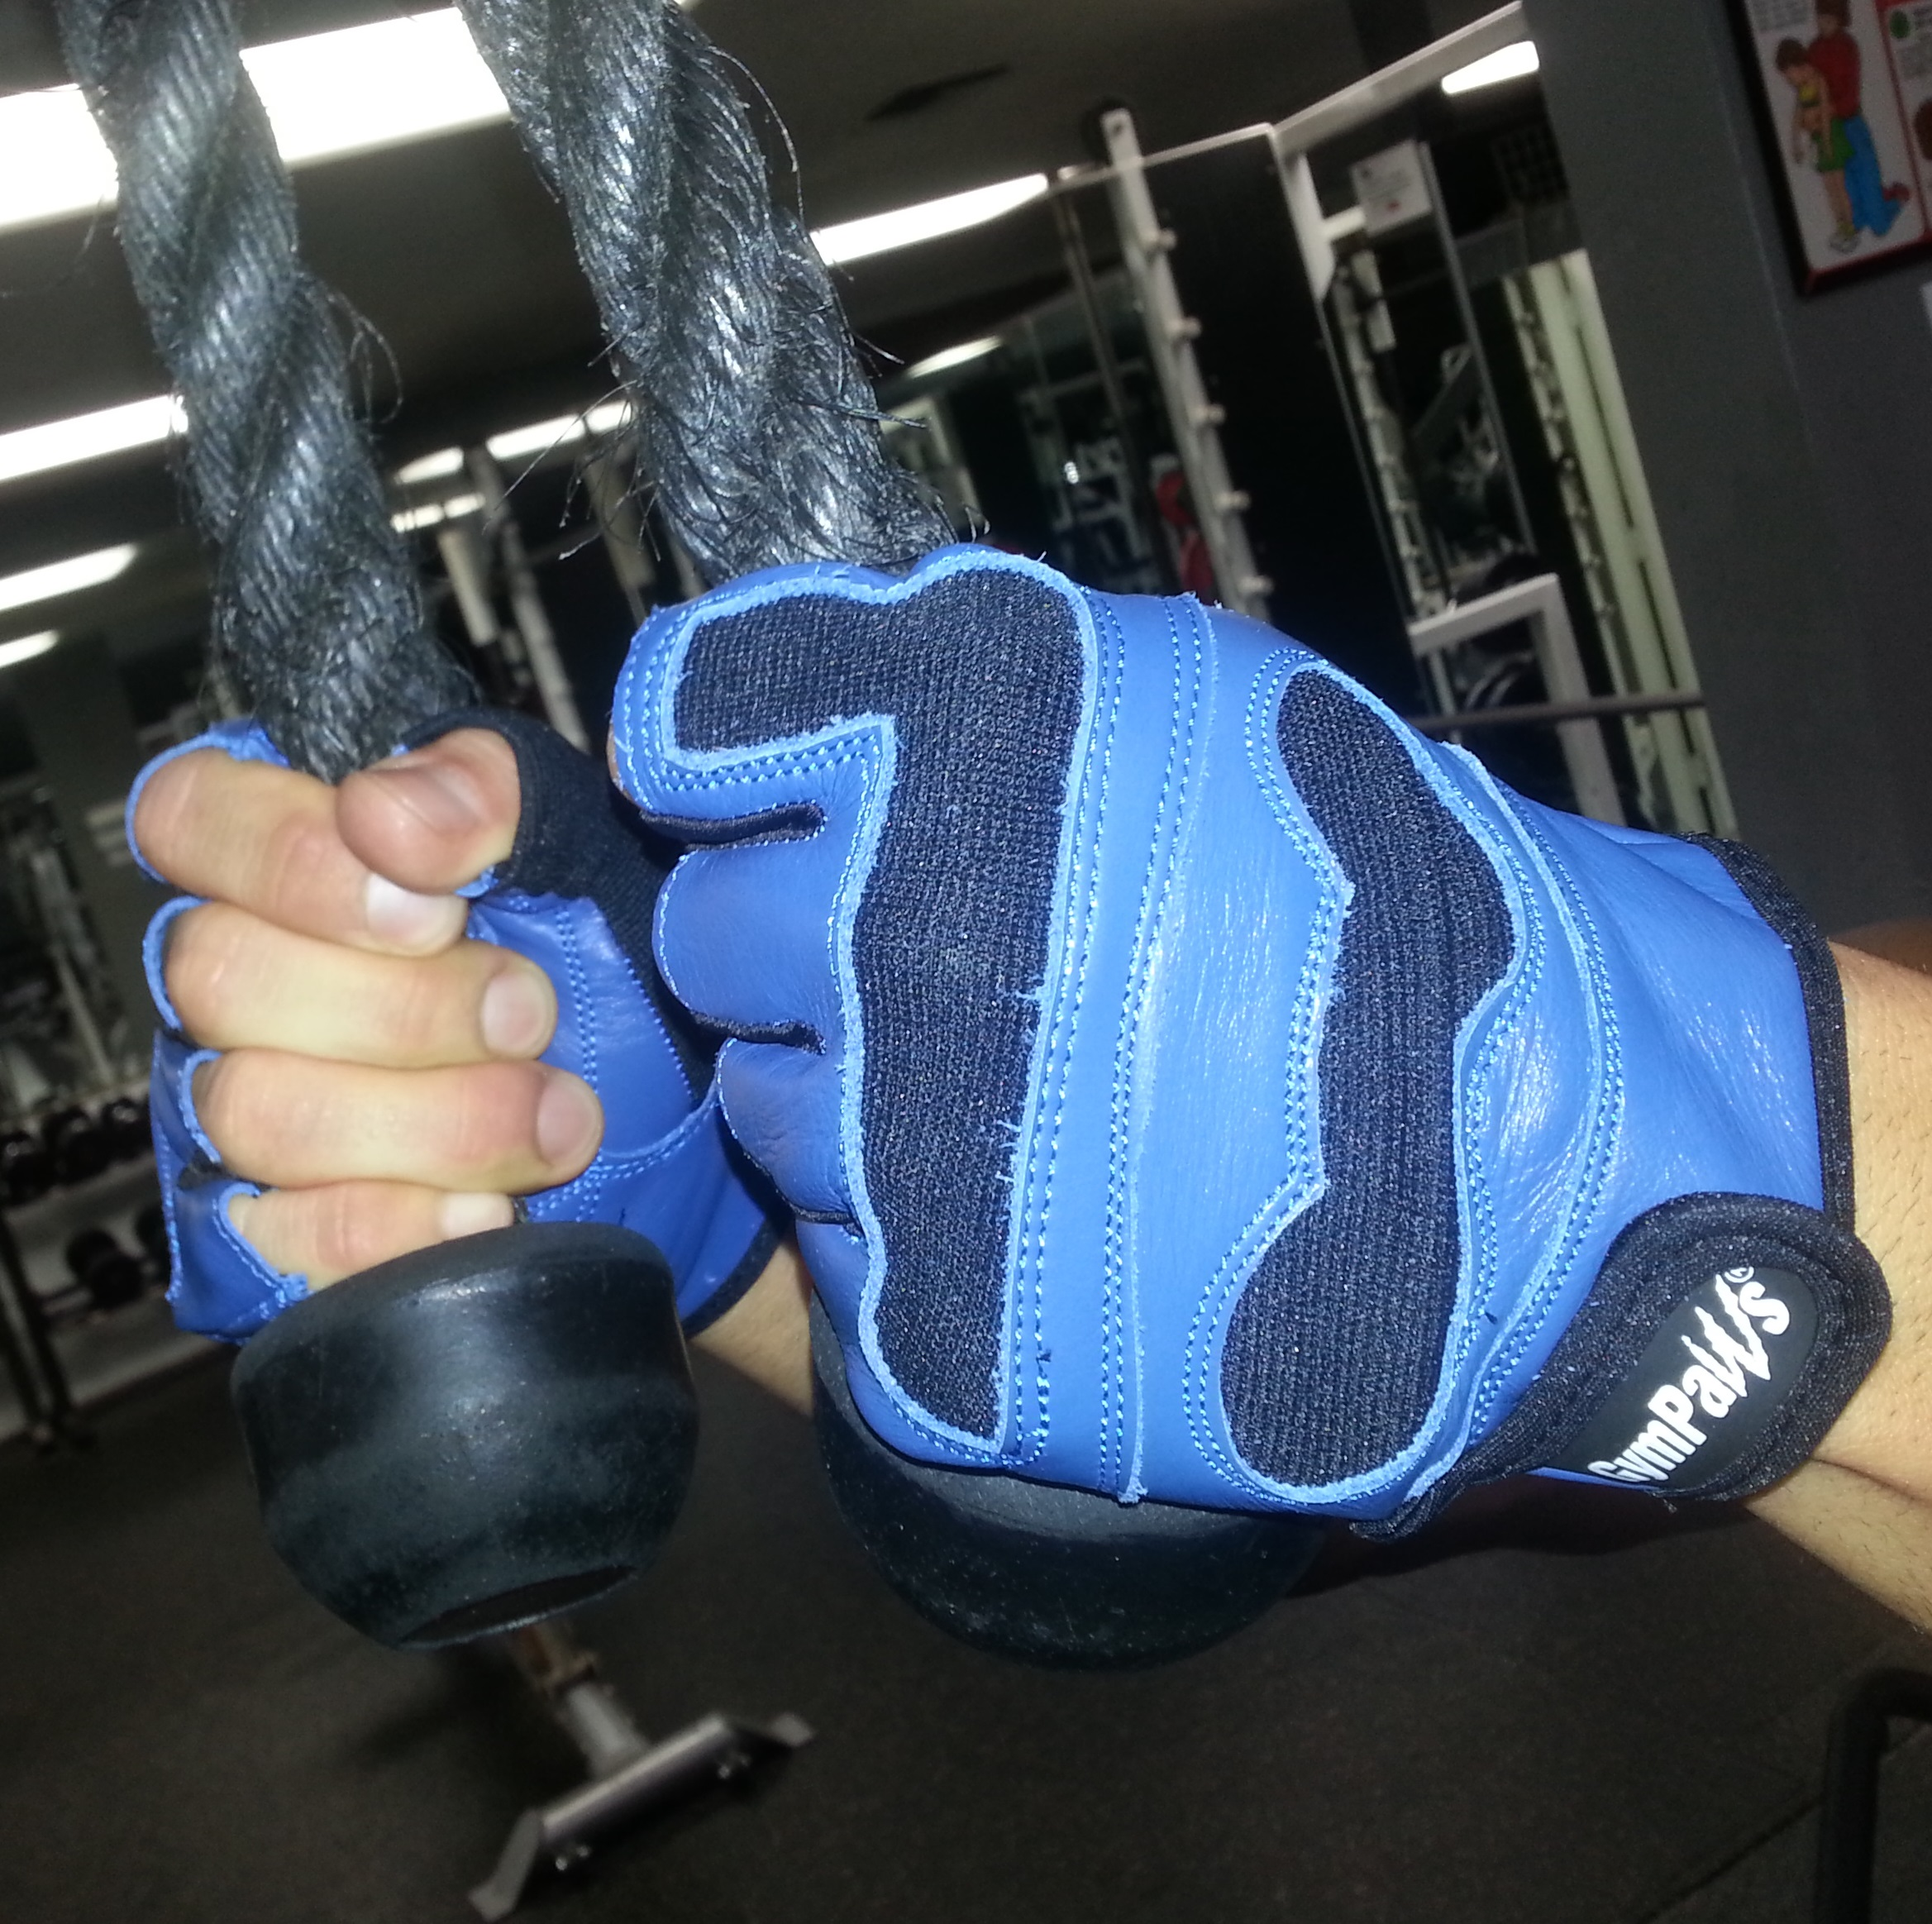 The Swolemate Gym Glove